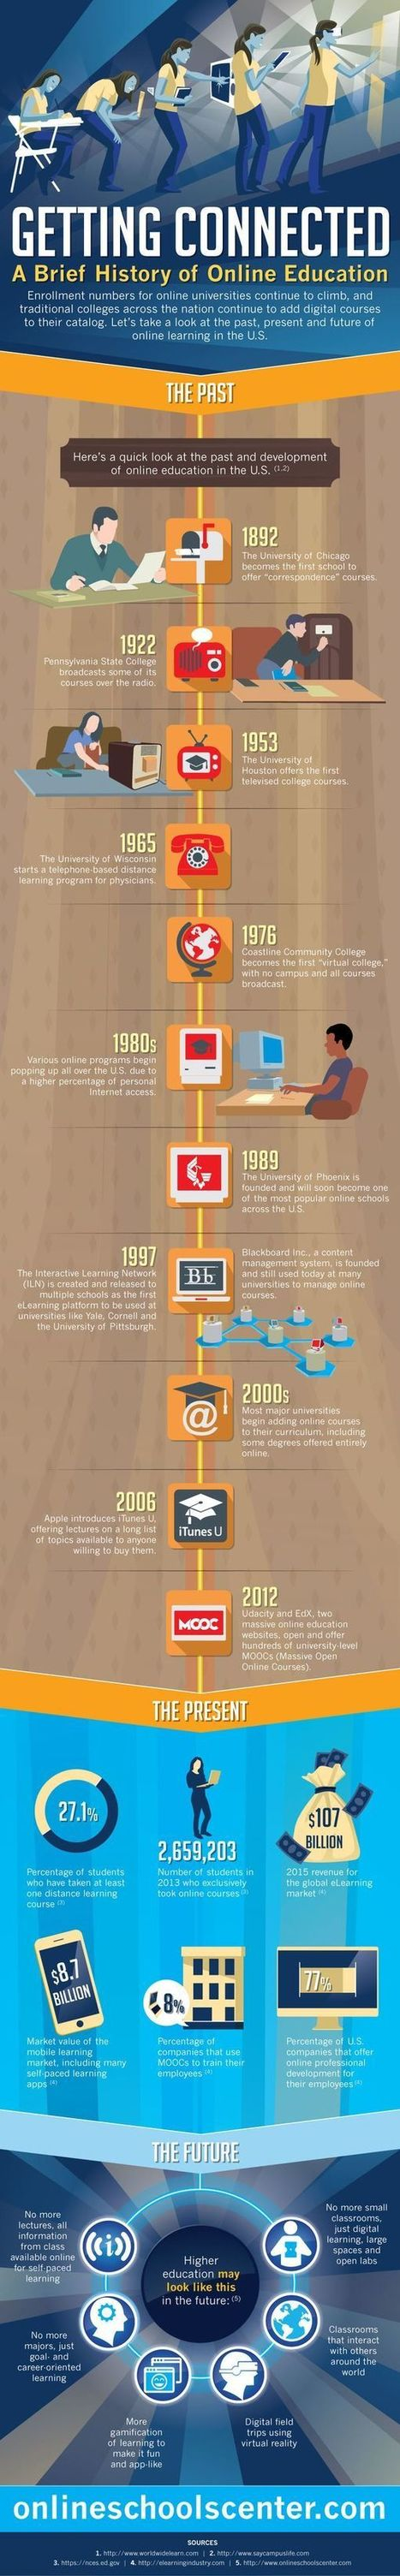 What Is The Brief History Of Online Education? #infographic | Emerging Learning Technologies | Scoop.it